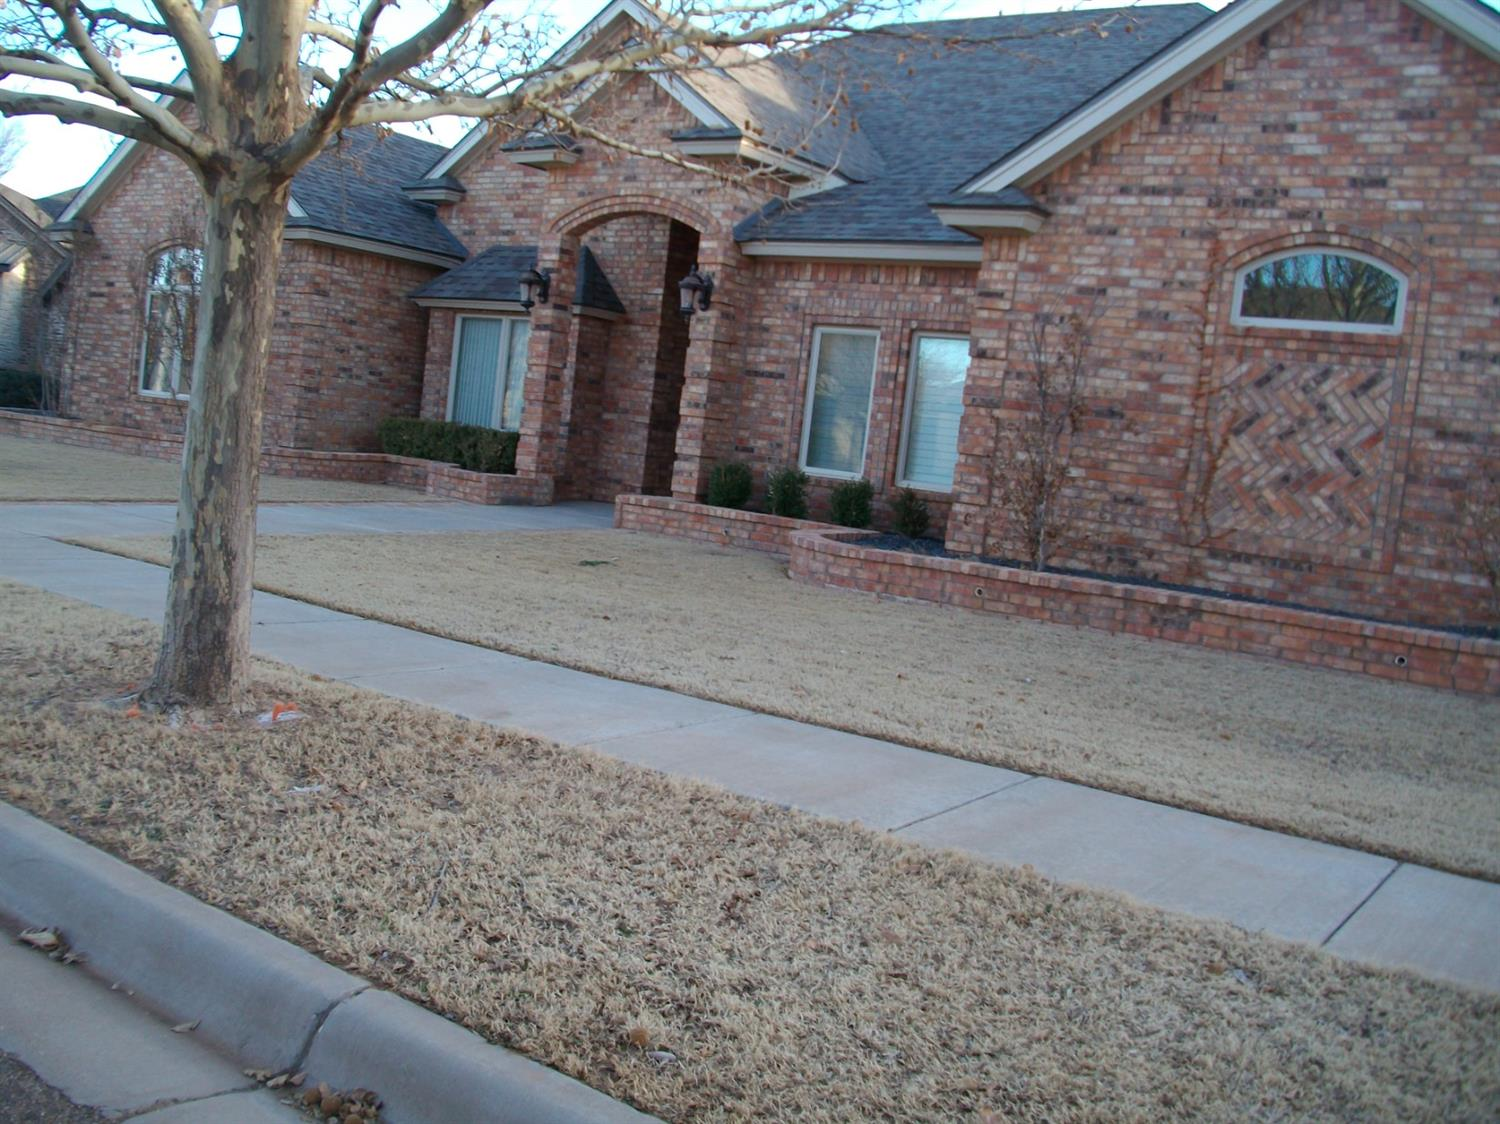 a Gerald Long home/4 BD W 4 bath W/office.  or 5 bedrooms  hugh covered backporch. lots of storage, sprinkler,   7 ft fence/large Iso master with hugh wrap around closet/ gourment kitchen 2 0vens and microwave built in/ window seat w storage din./ high ceilings    3 car gar. paved alley  alarm system ? you will love all the extras as @ lighting  2 central systems, one for the left side of house  one for the right side  great window treatments.